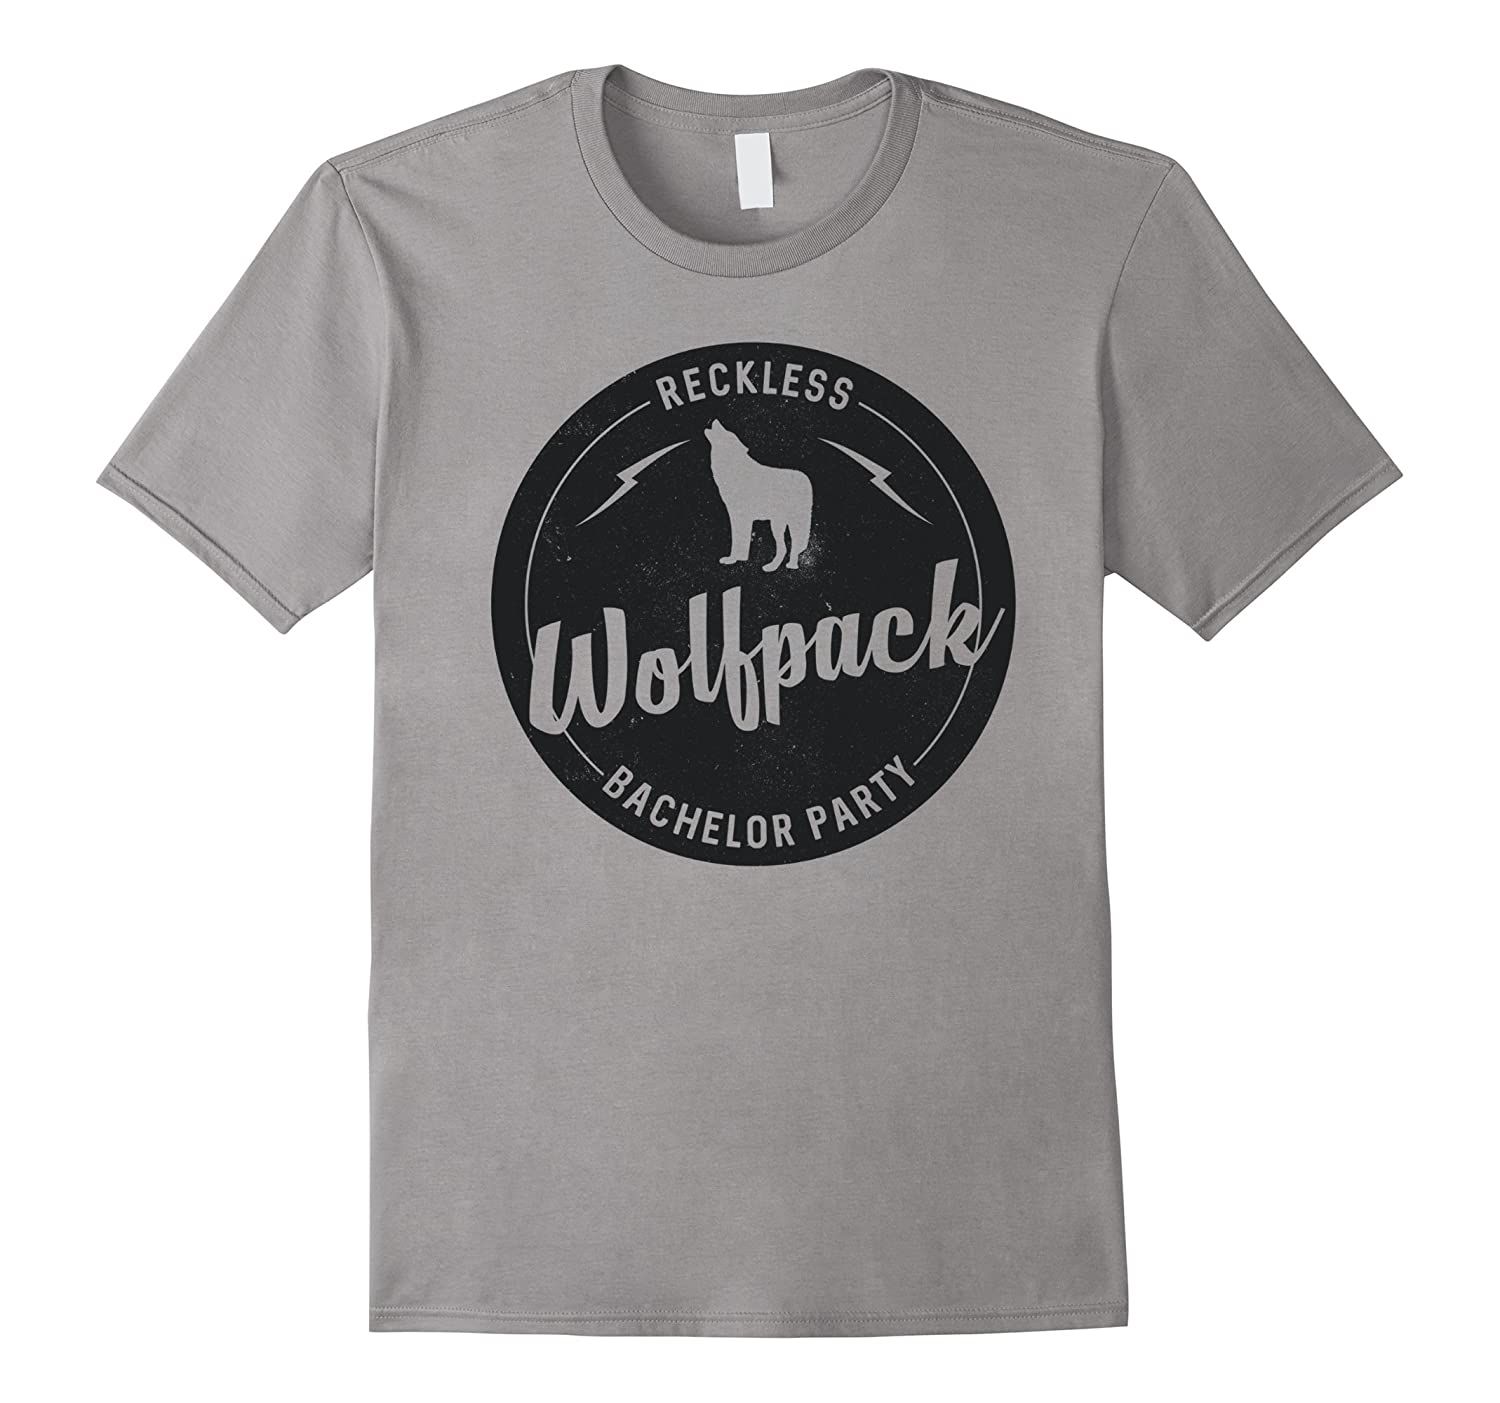 Reckless, wolfpack, bachelor party, cool t-shirt-CL